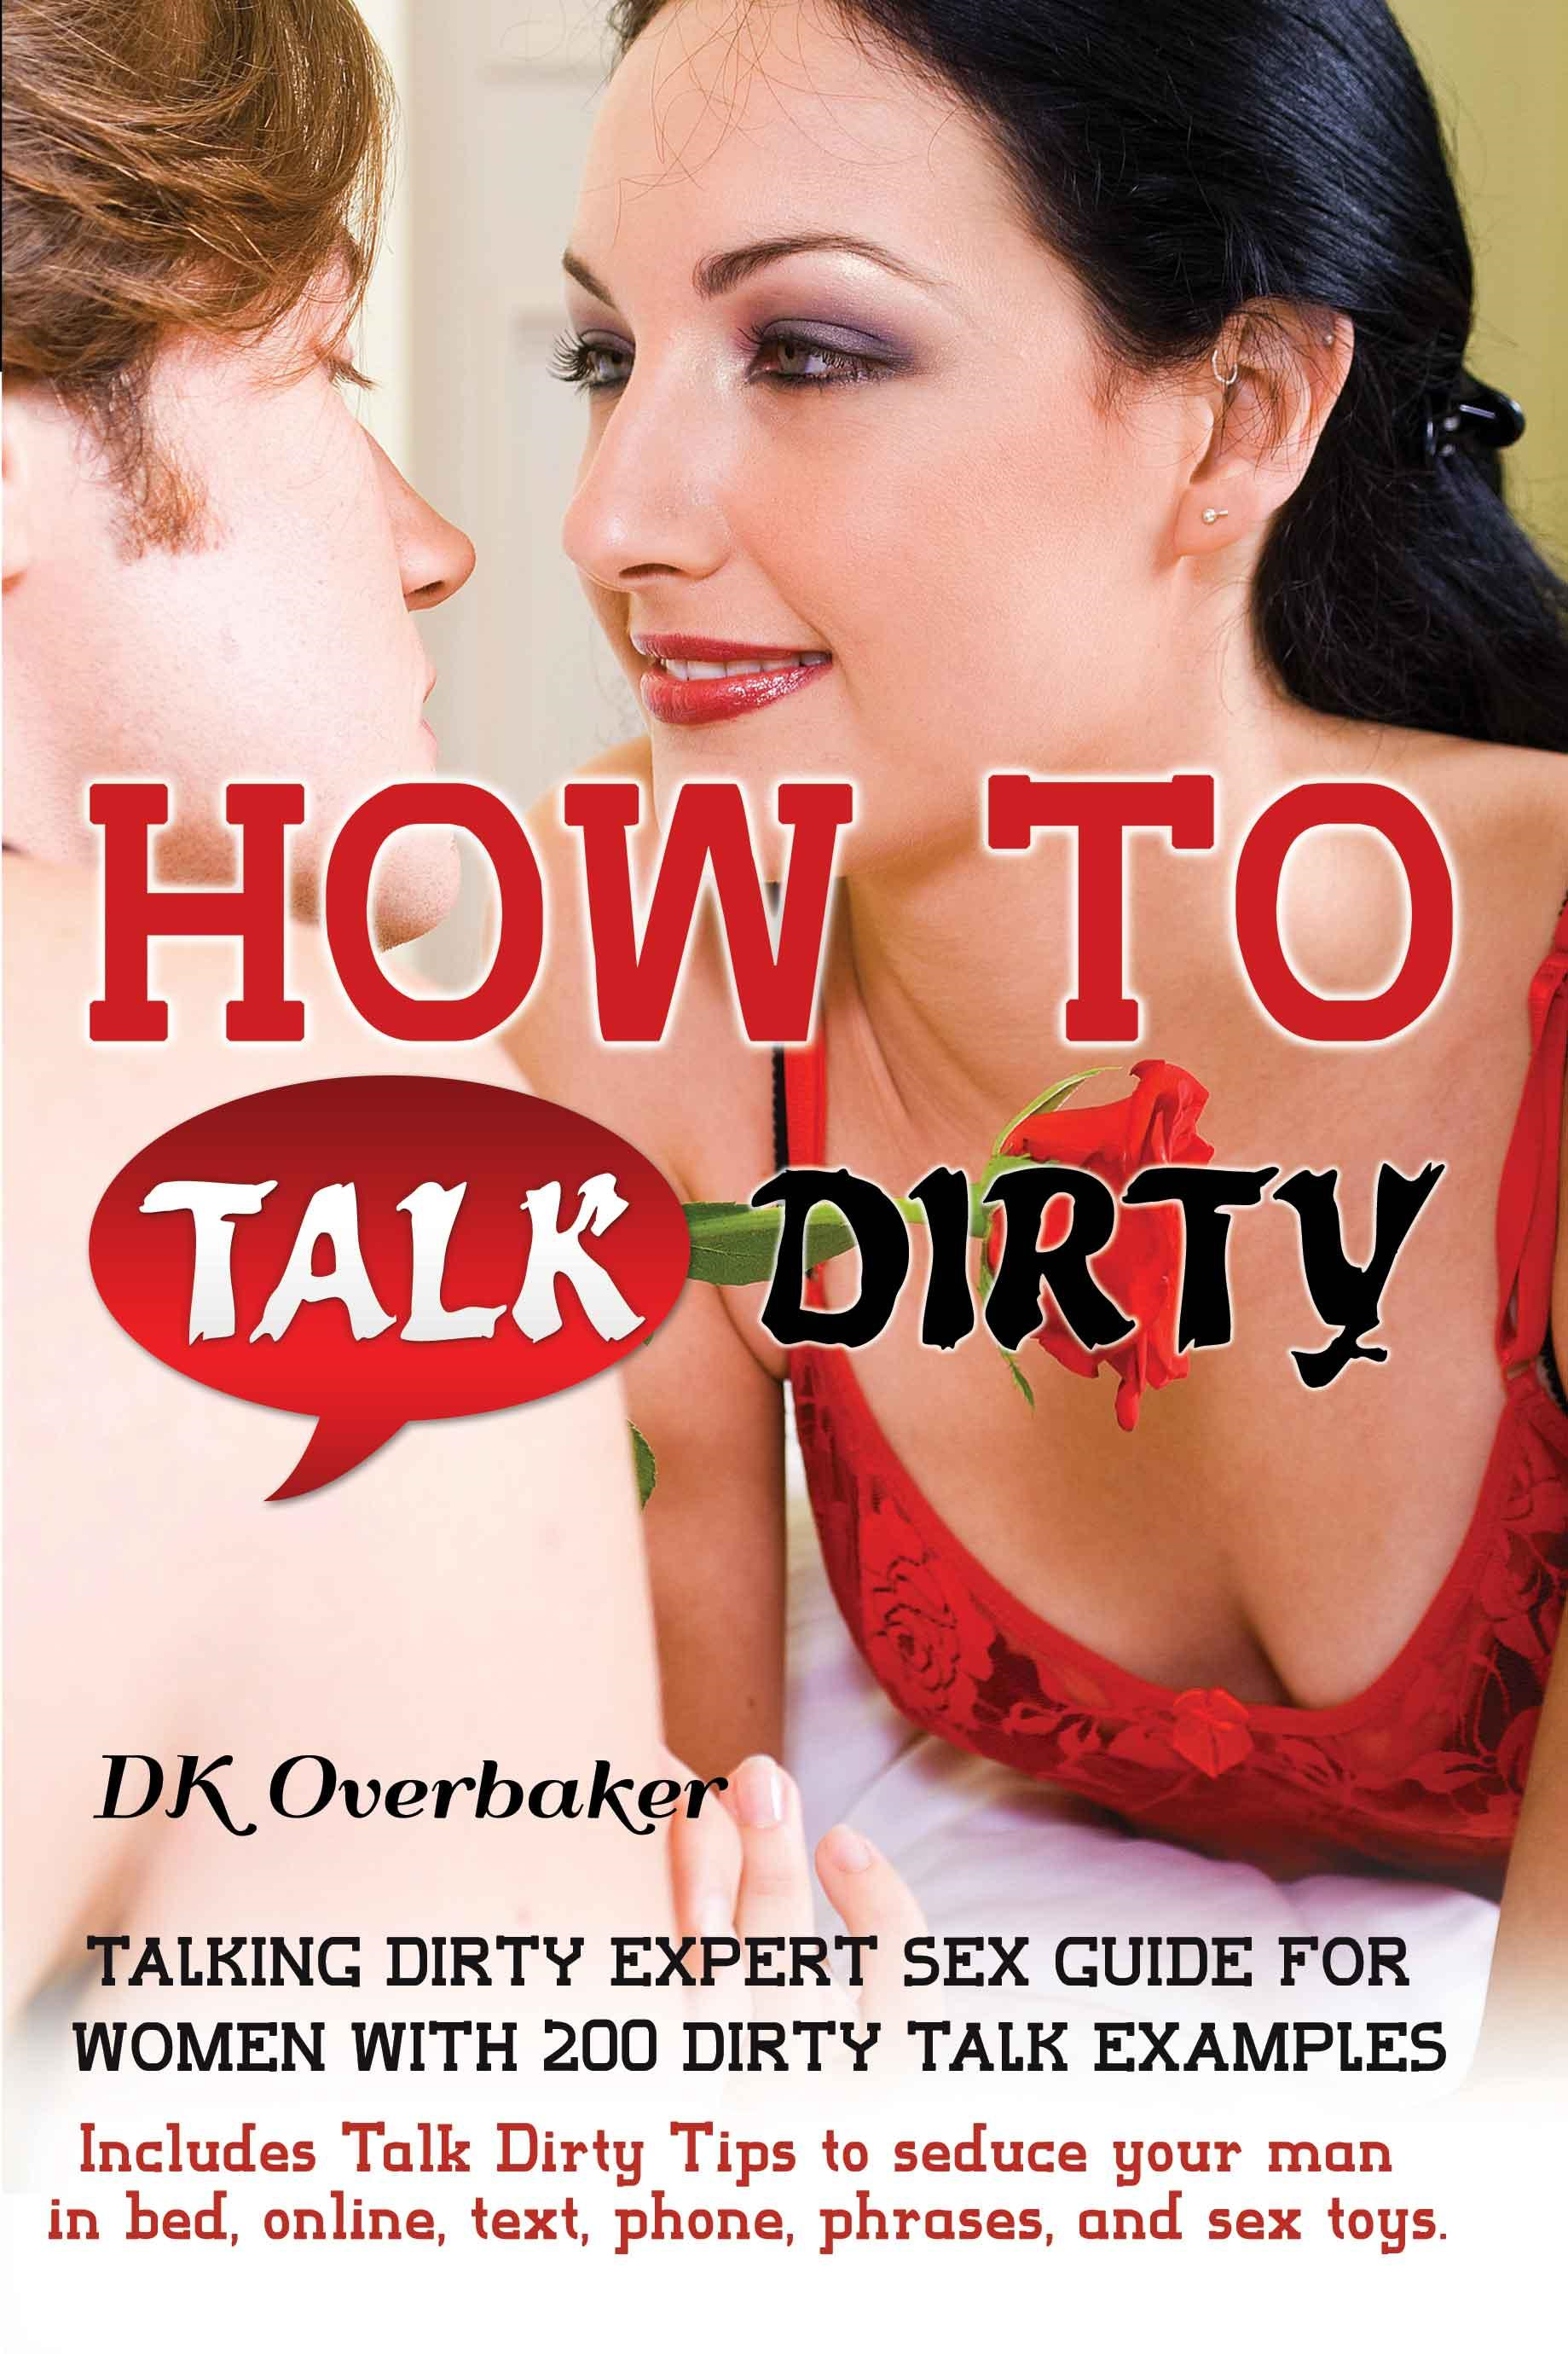 DK Overbaker - How to Talk Dirty. Talking Dirty Expert Sex Guide for Women with 200 Dirty Talk Examples. Includes Talk Dirty Tips to seduce your man in bed, online,